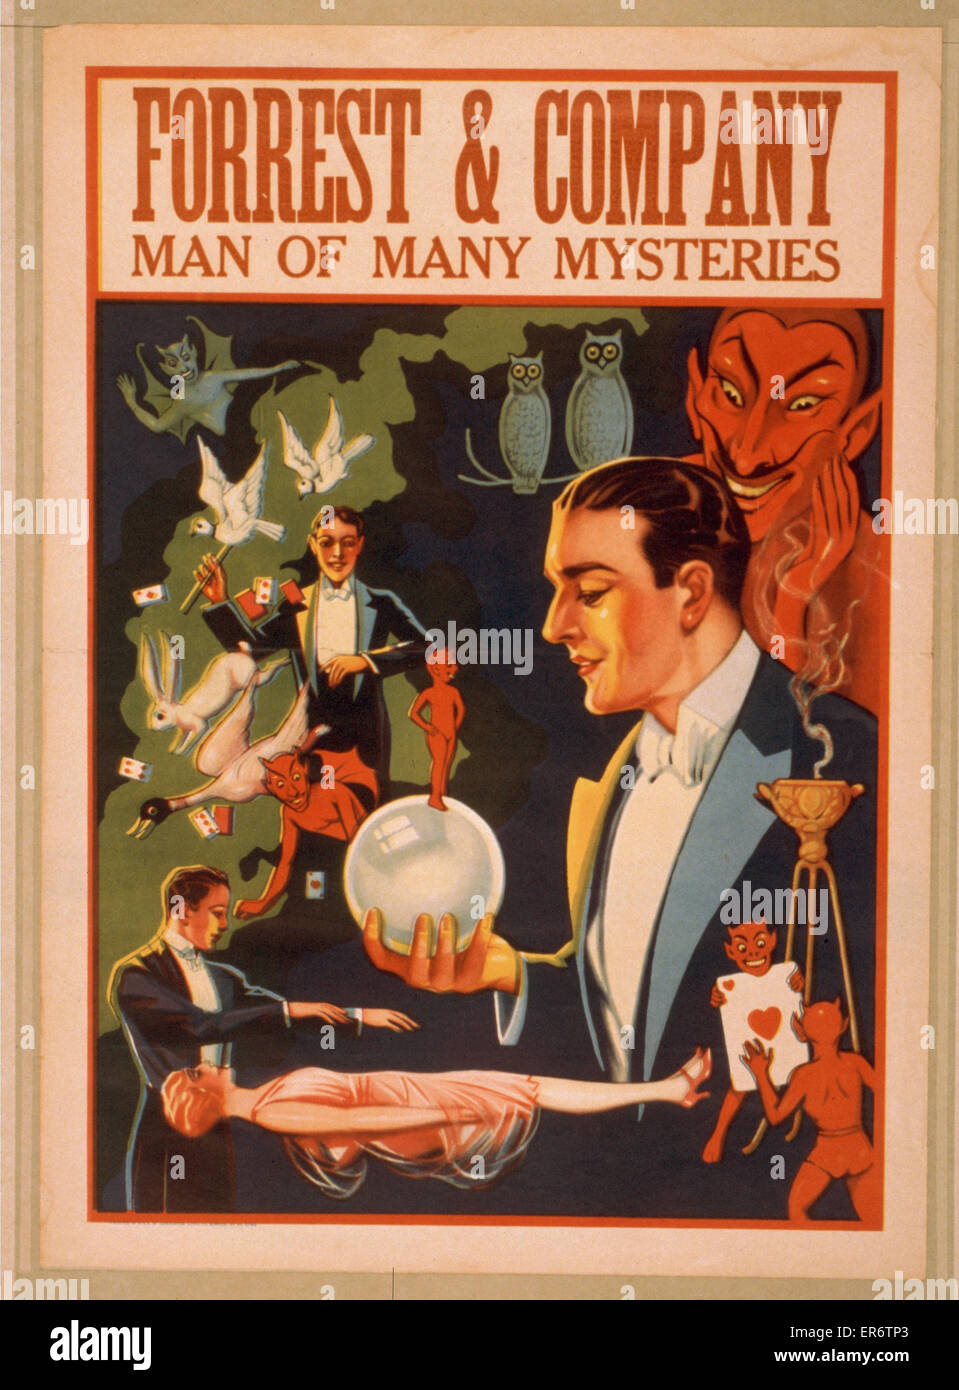 Forrest & Company man of many mysteries. Date 19 - ?. - Stock Image